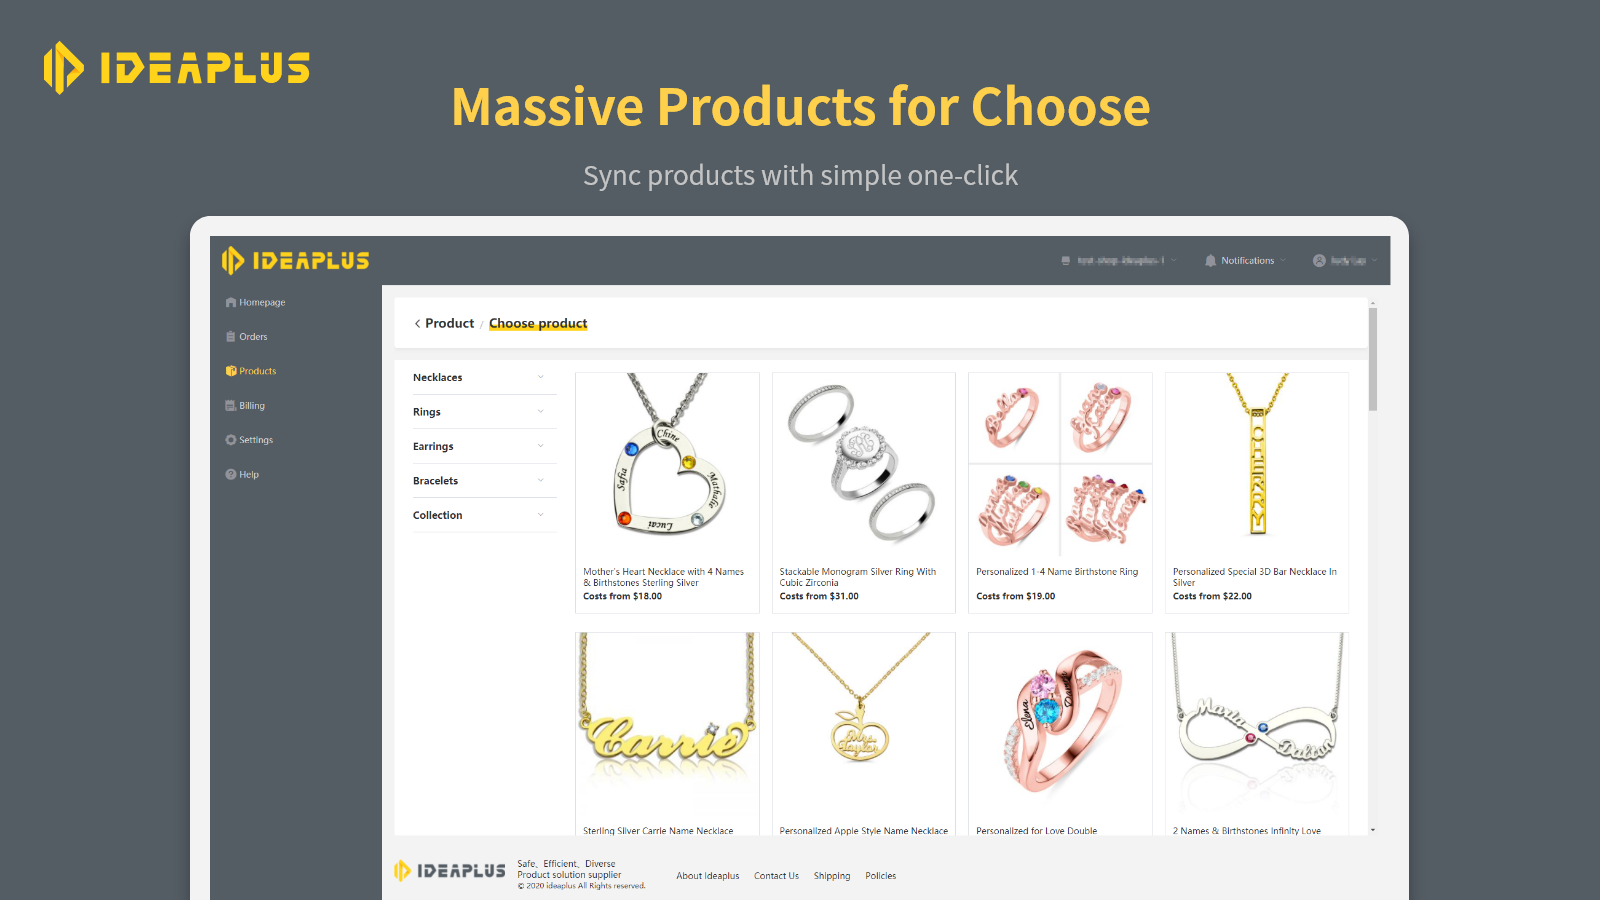 Massive products for choose